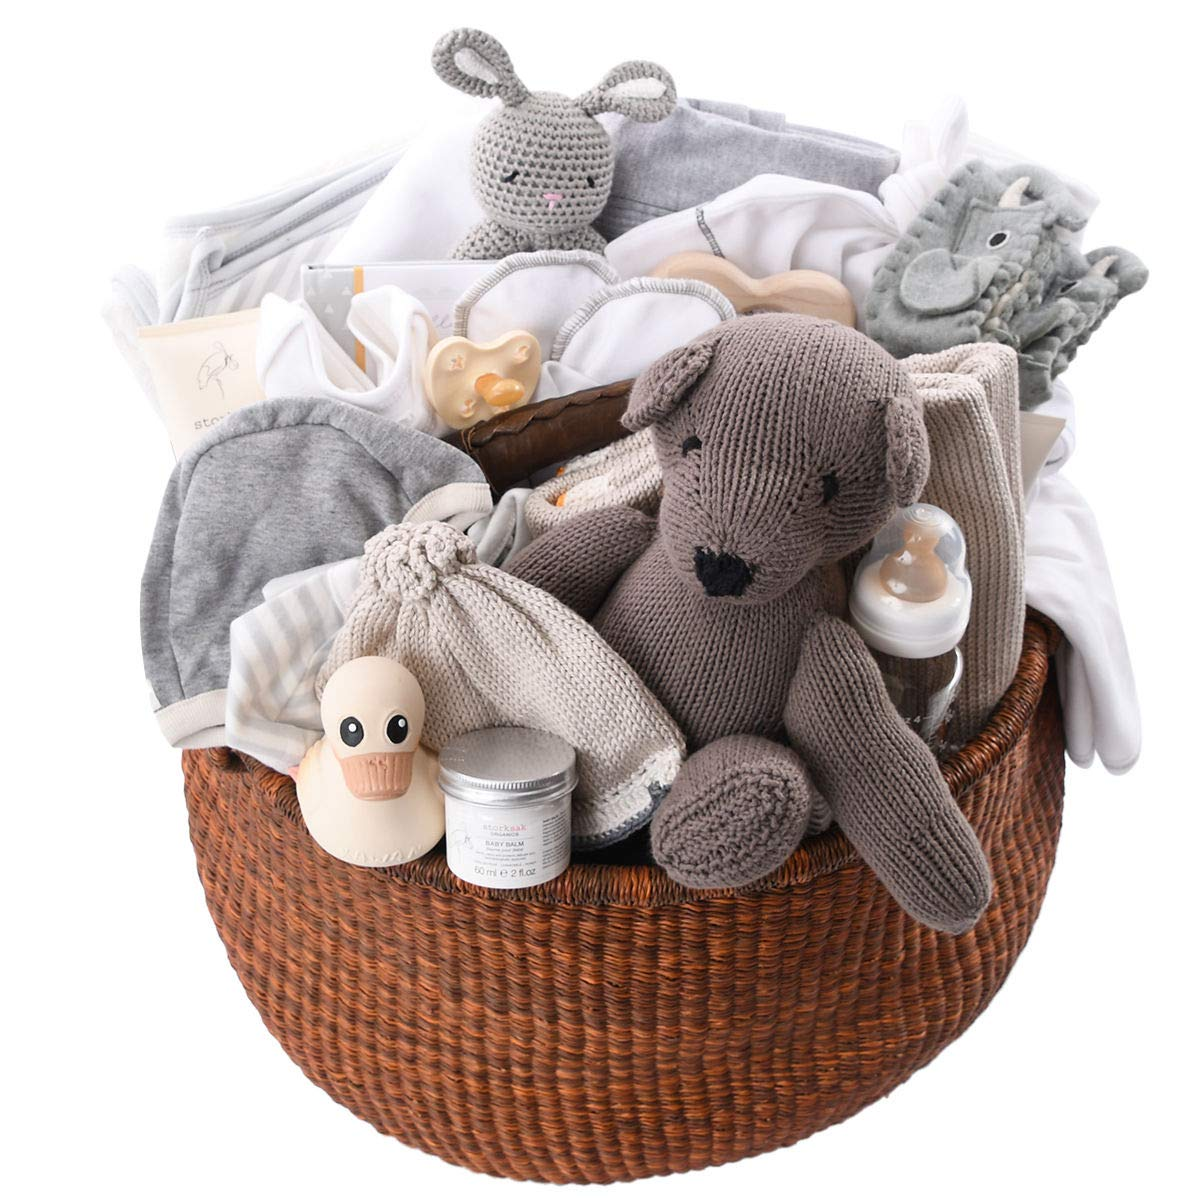 Amazon Com Huge Baby Gift Basket Organic Luxury Group Gift Idea For Baby Shower Corporate Gifts Baby